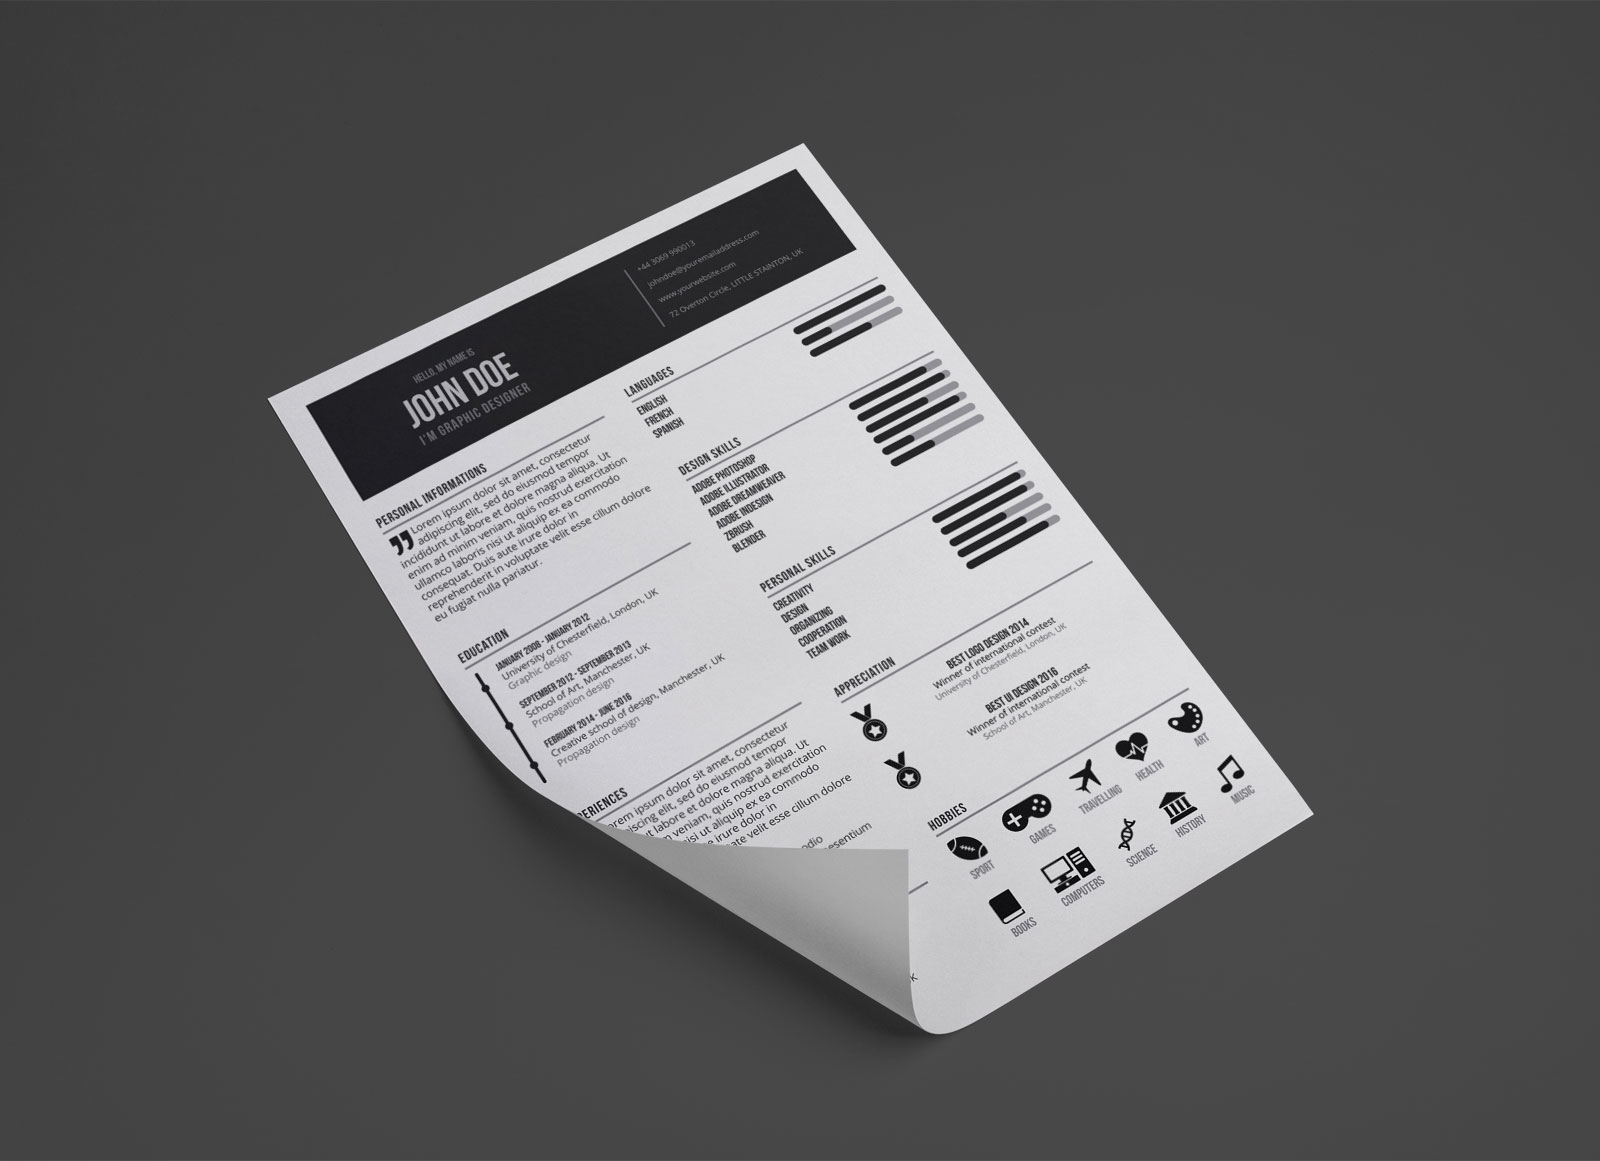 Free-Graphic-Designer-Resume-in-PSD-Format-1